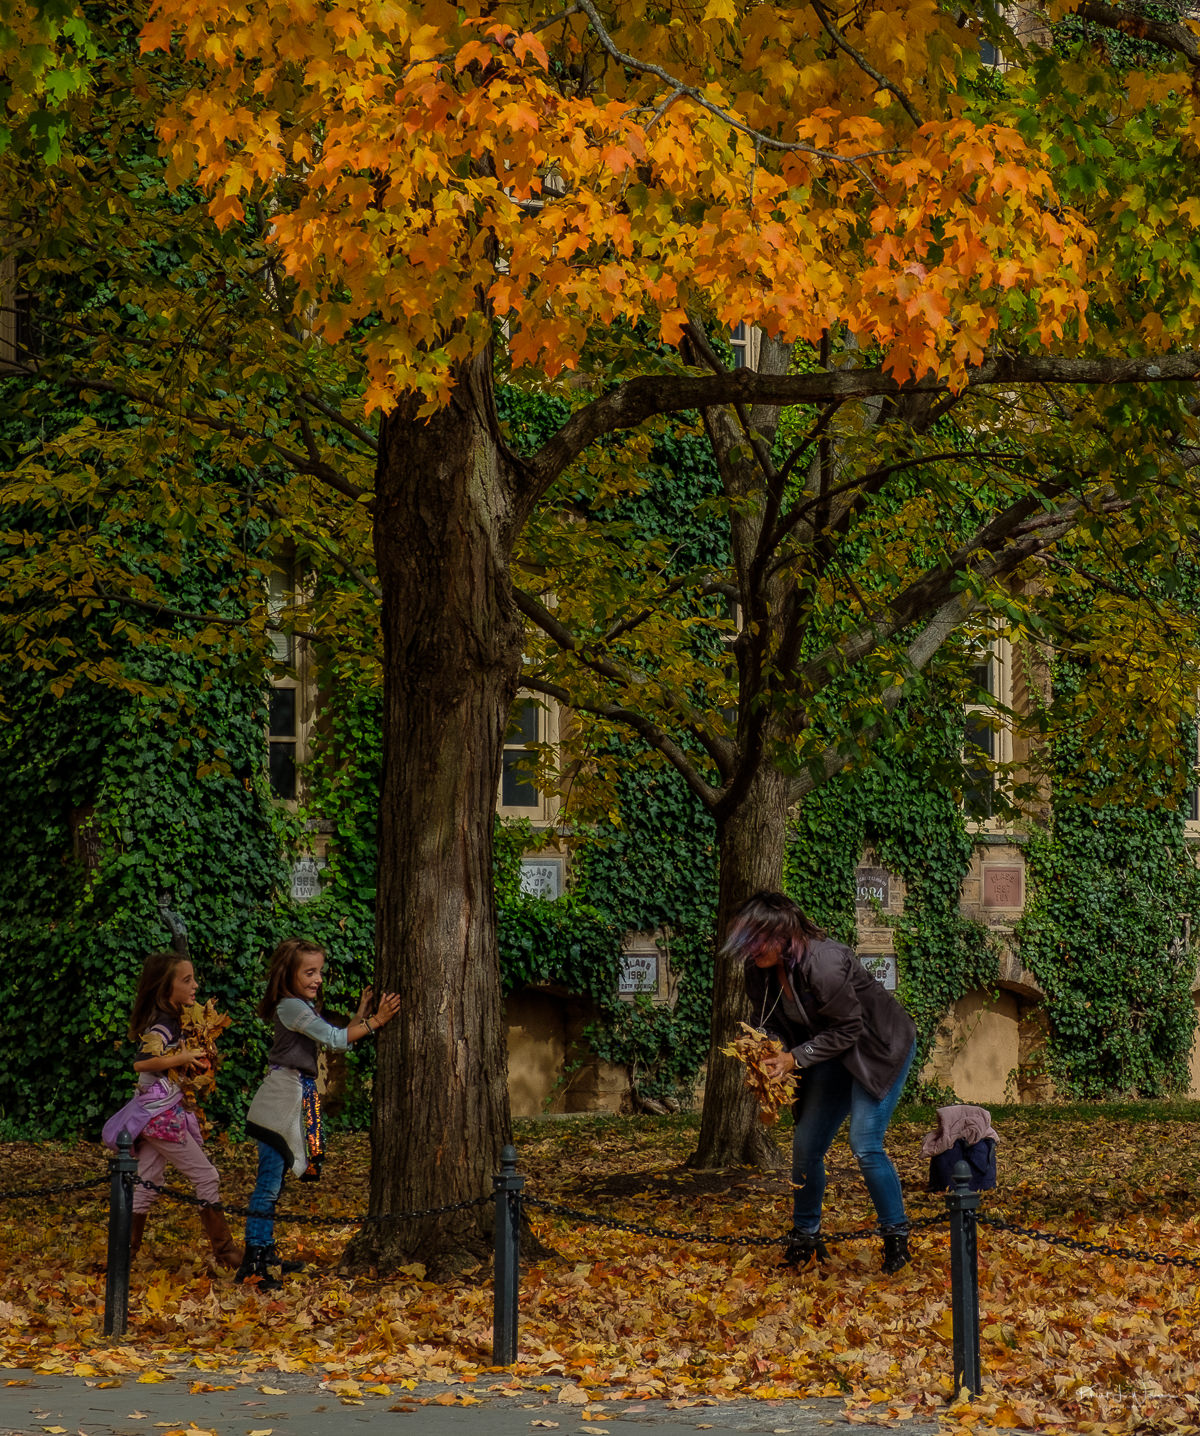 Autumn at Princeton University with people playing in leaves